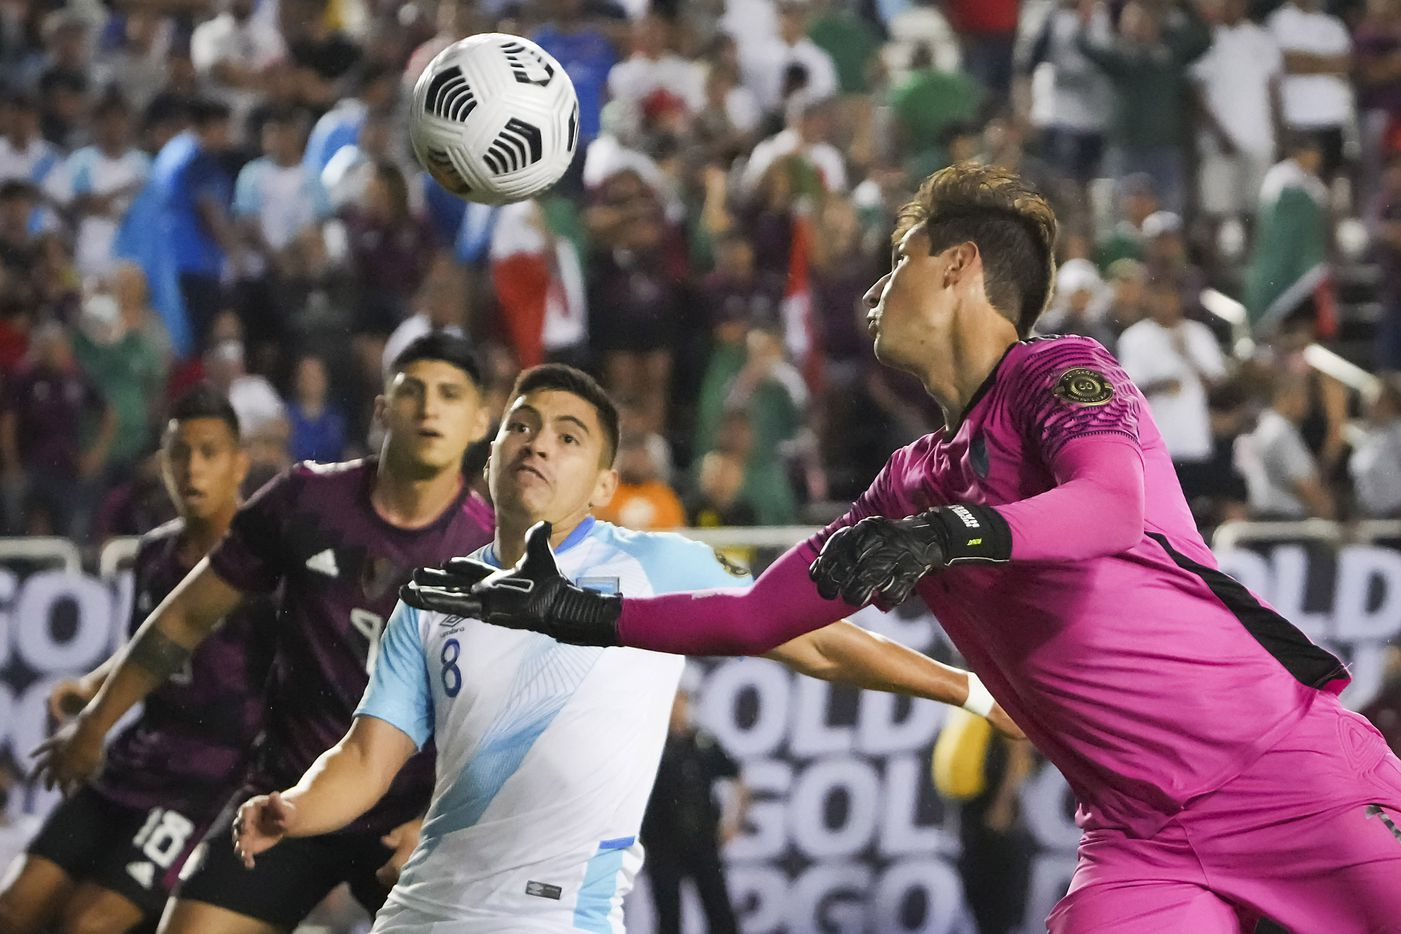 Guatemala goalkeeper Nicholas Hagen (1) makes a save on a shot by Mexico midfielder Jesús Gallardo during the second half of a CONCACAF Gold Cup Group A soccer match at the Cotton Bowl on Wednesday, July 14, 2021, in Dallas.